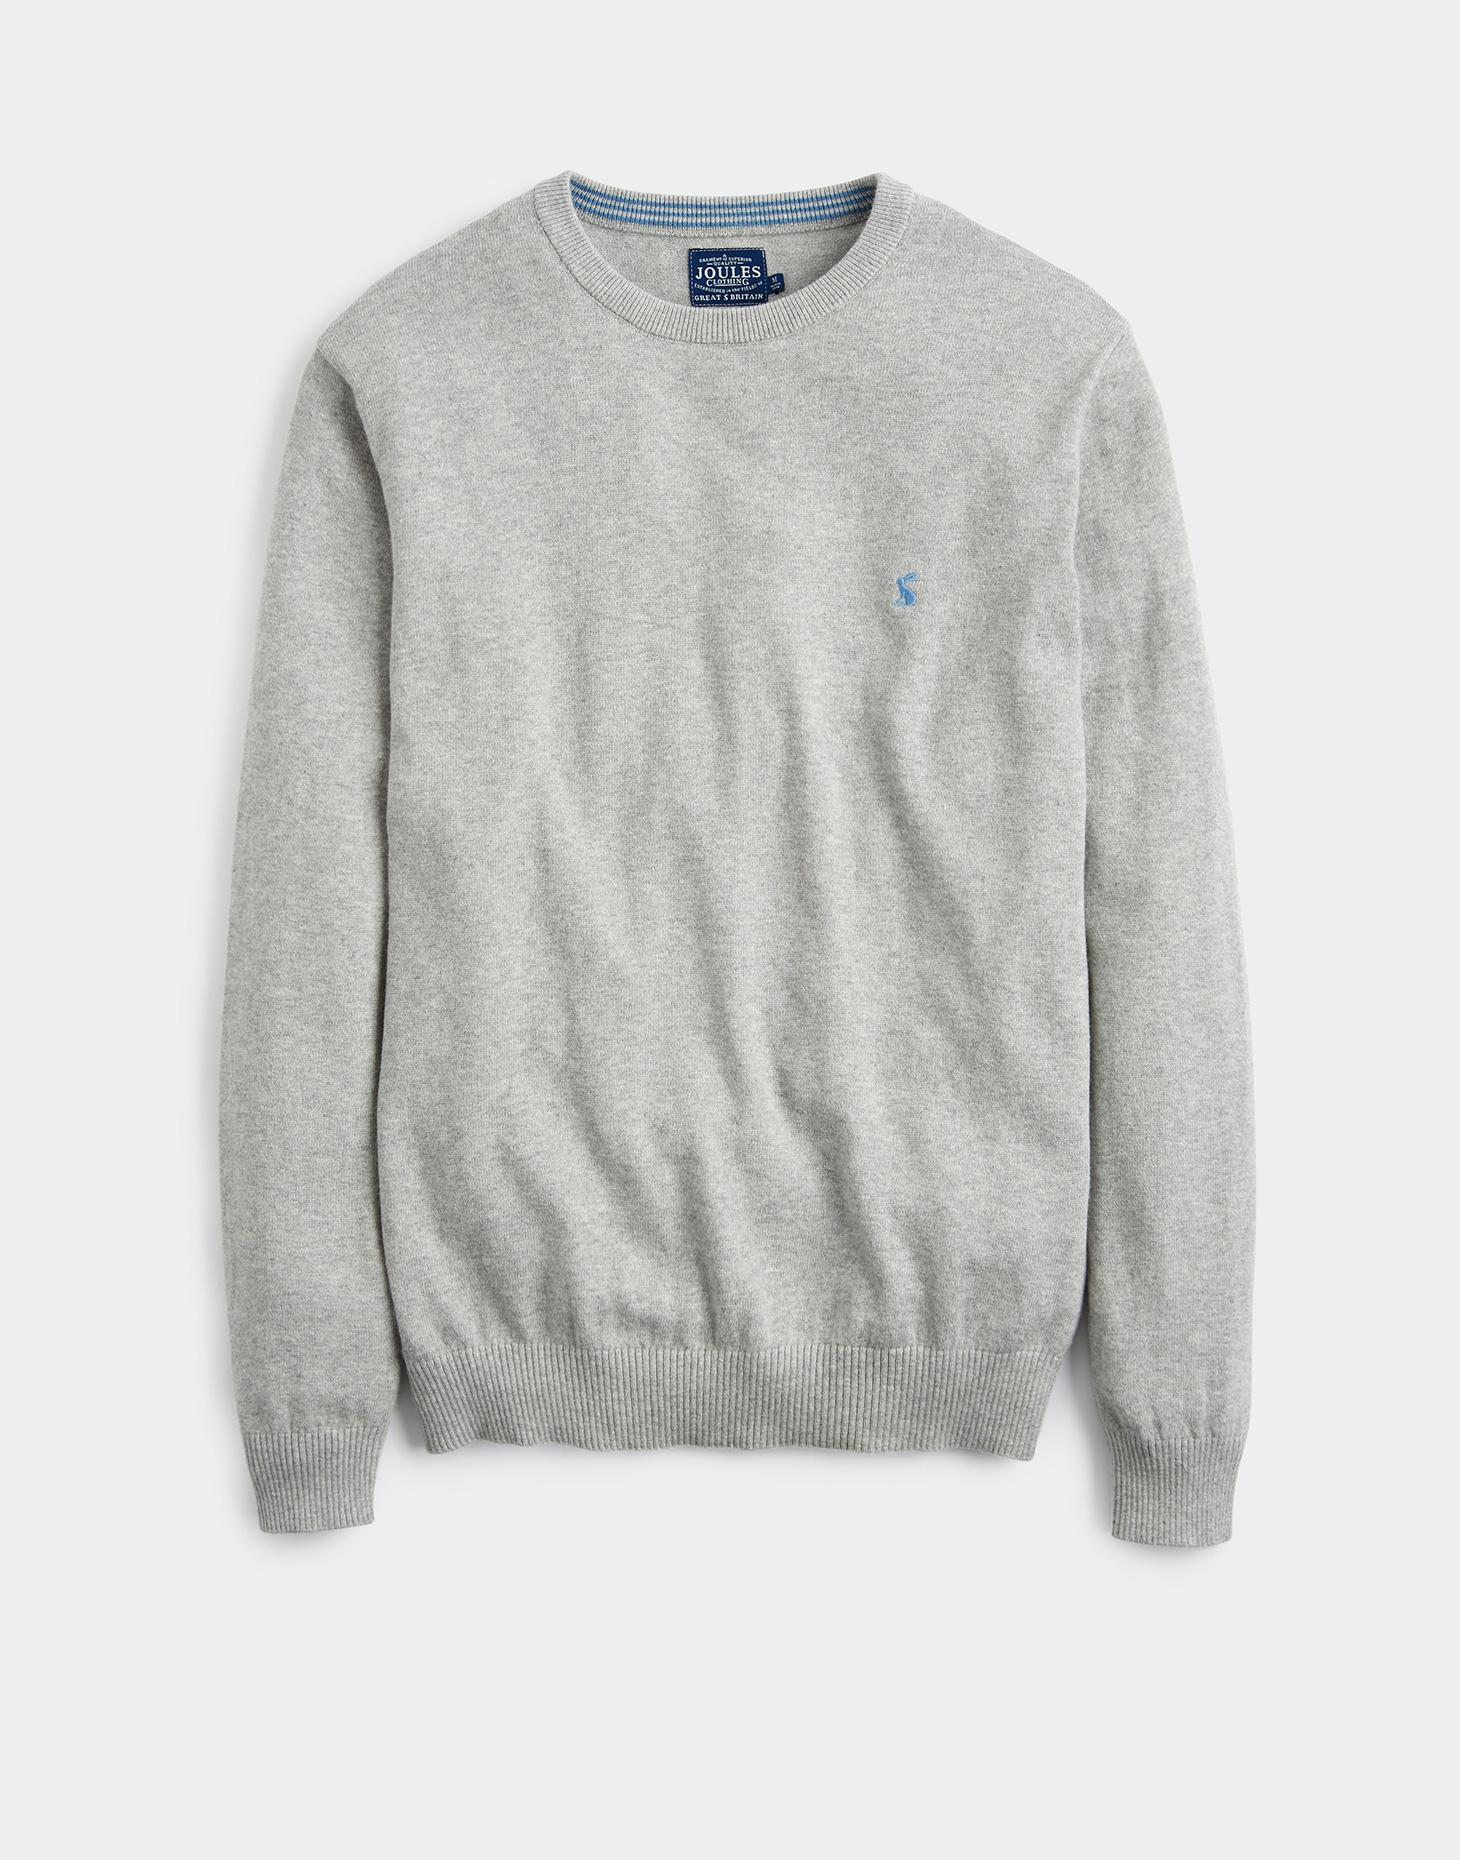 Joules Pale Grey Marl RETFORD Crew Neck Jumper